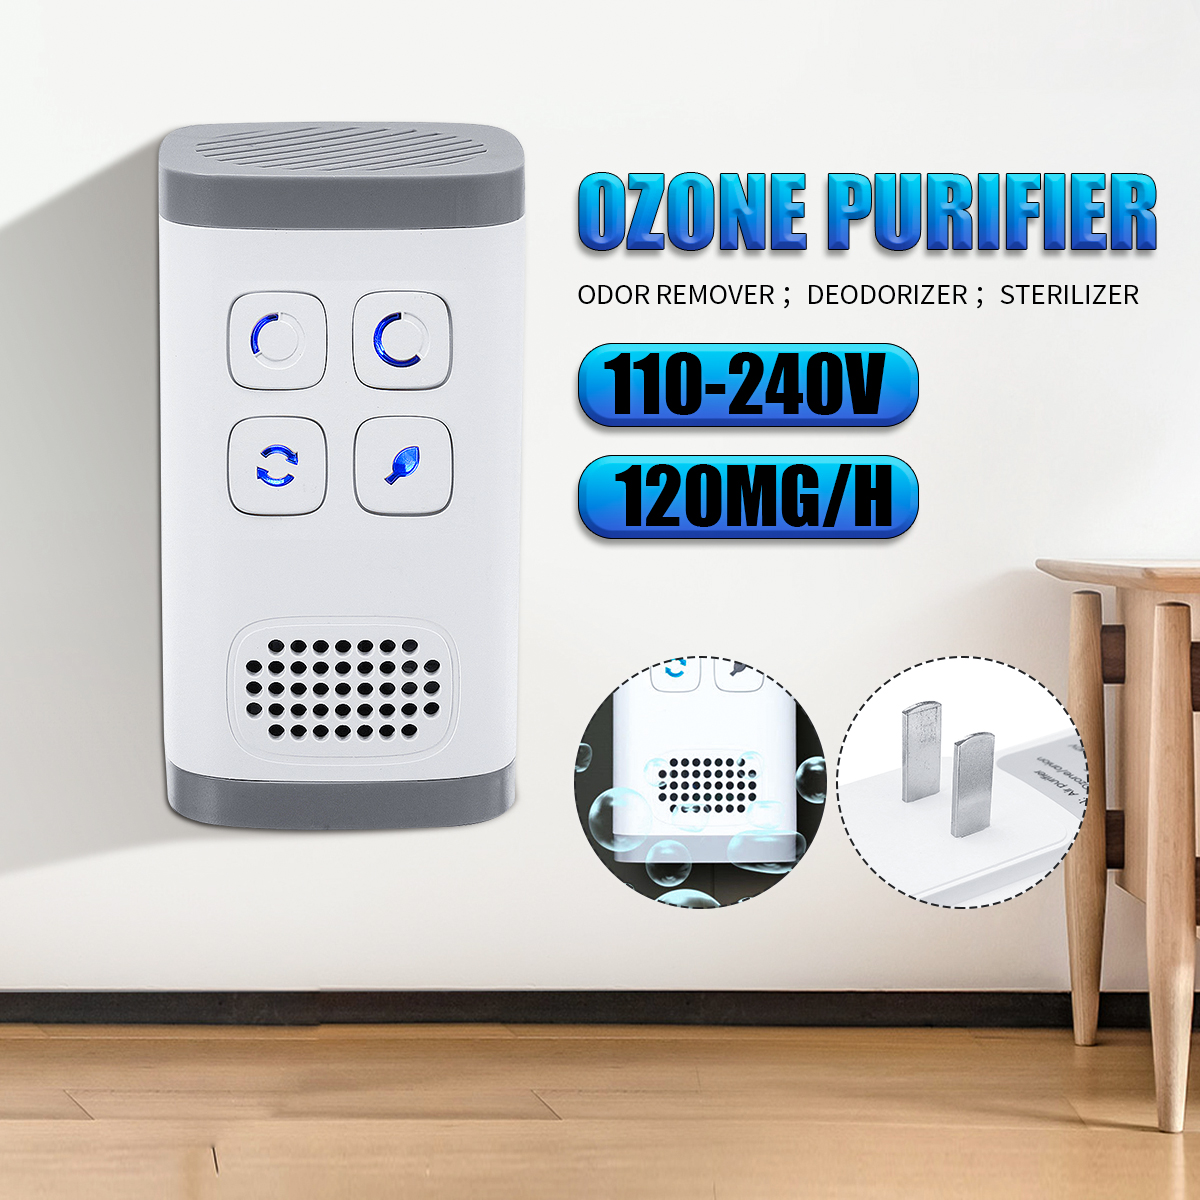 Air Purifier and Ozone Generator with 28 Million Negative Ions for Deodorizing Home and Bathroom 2